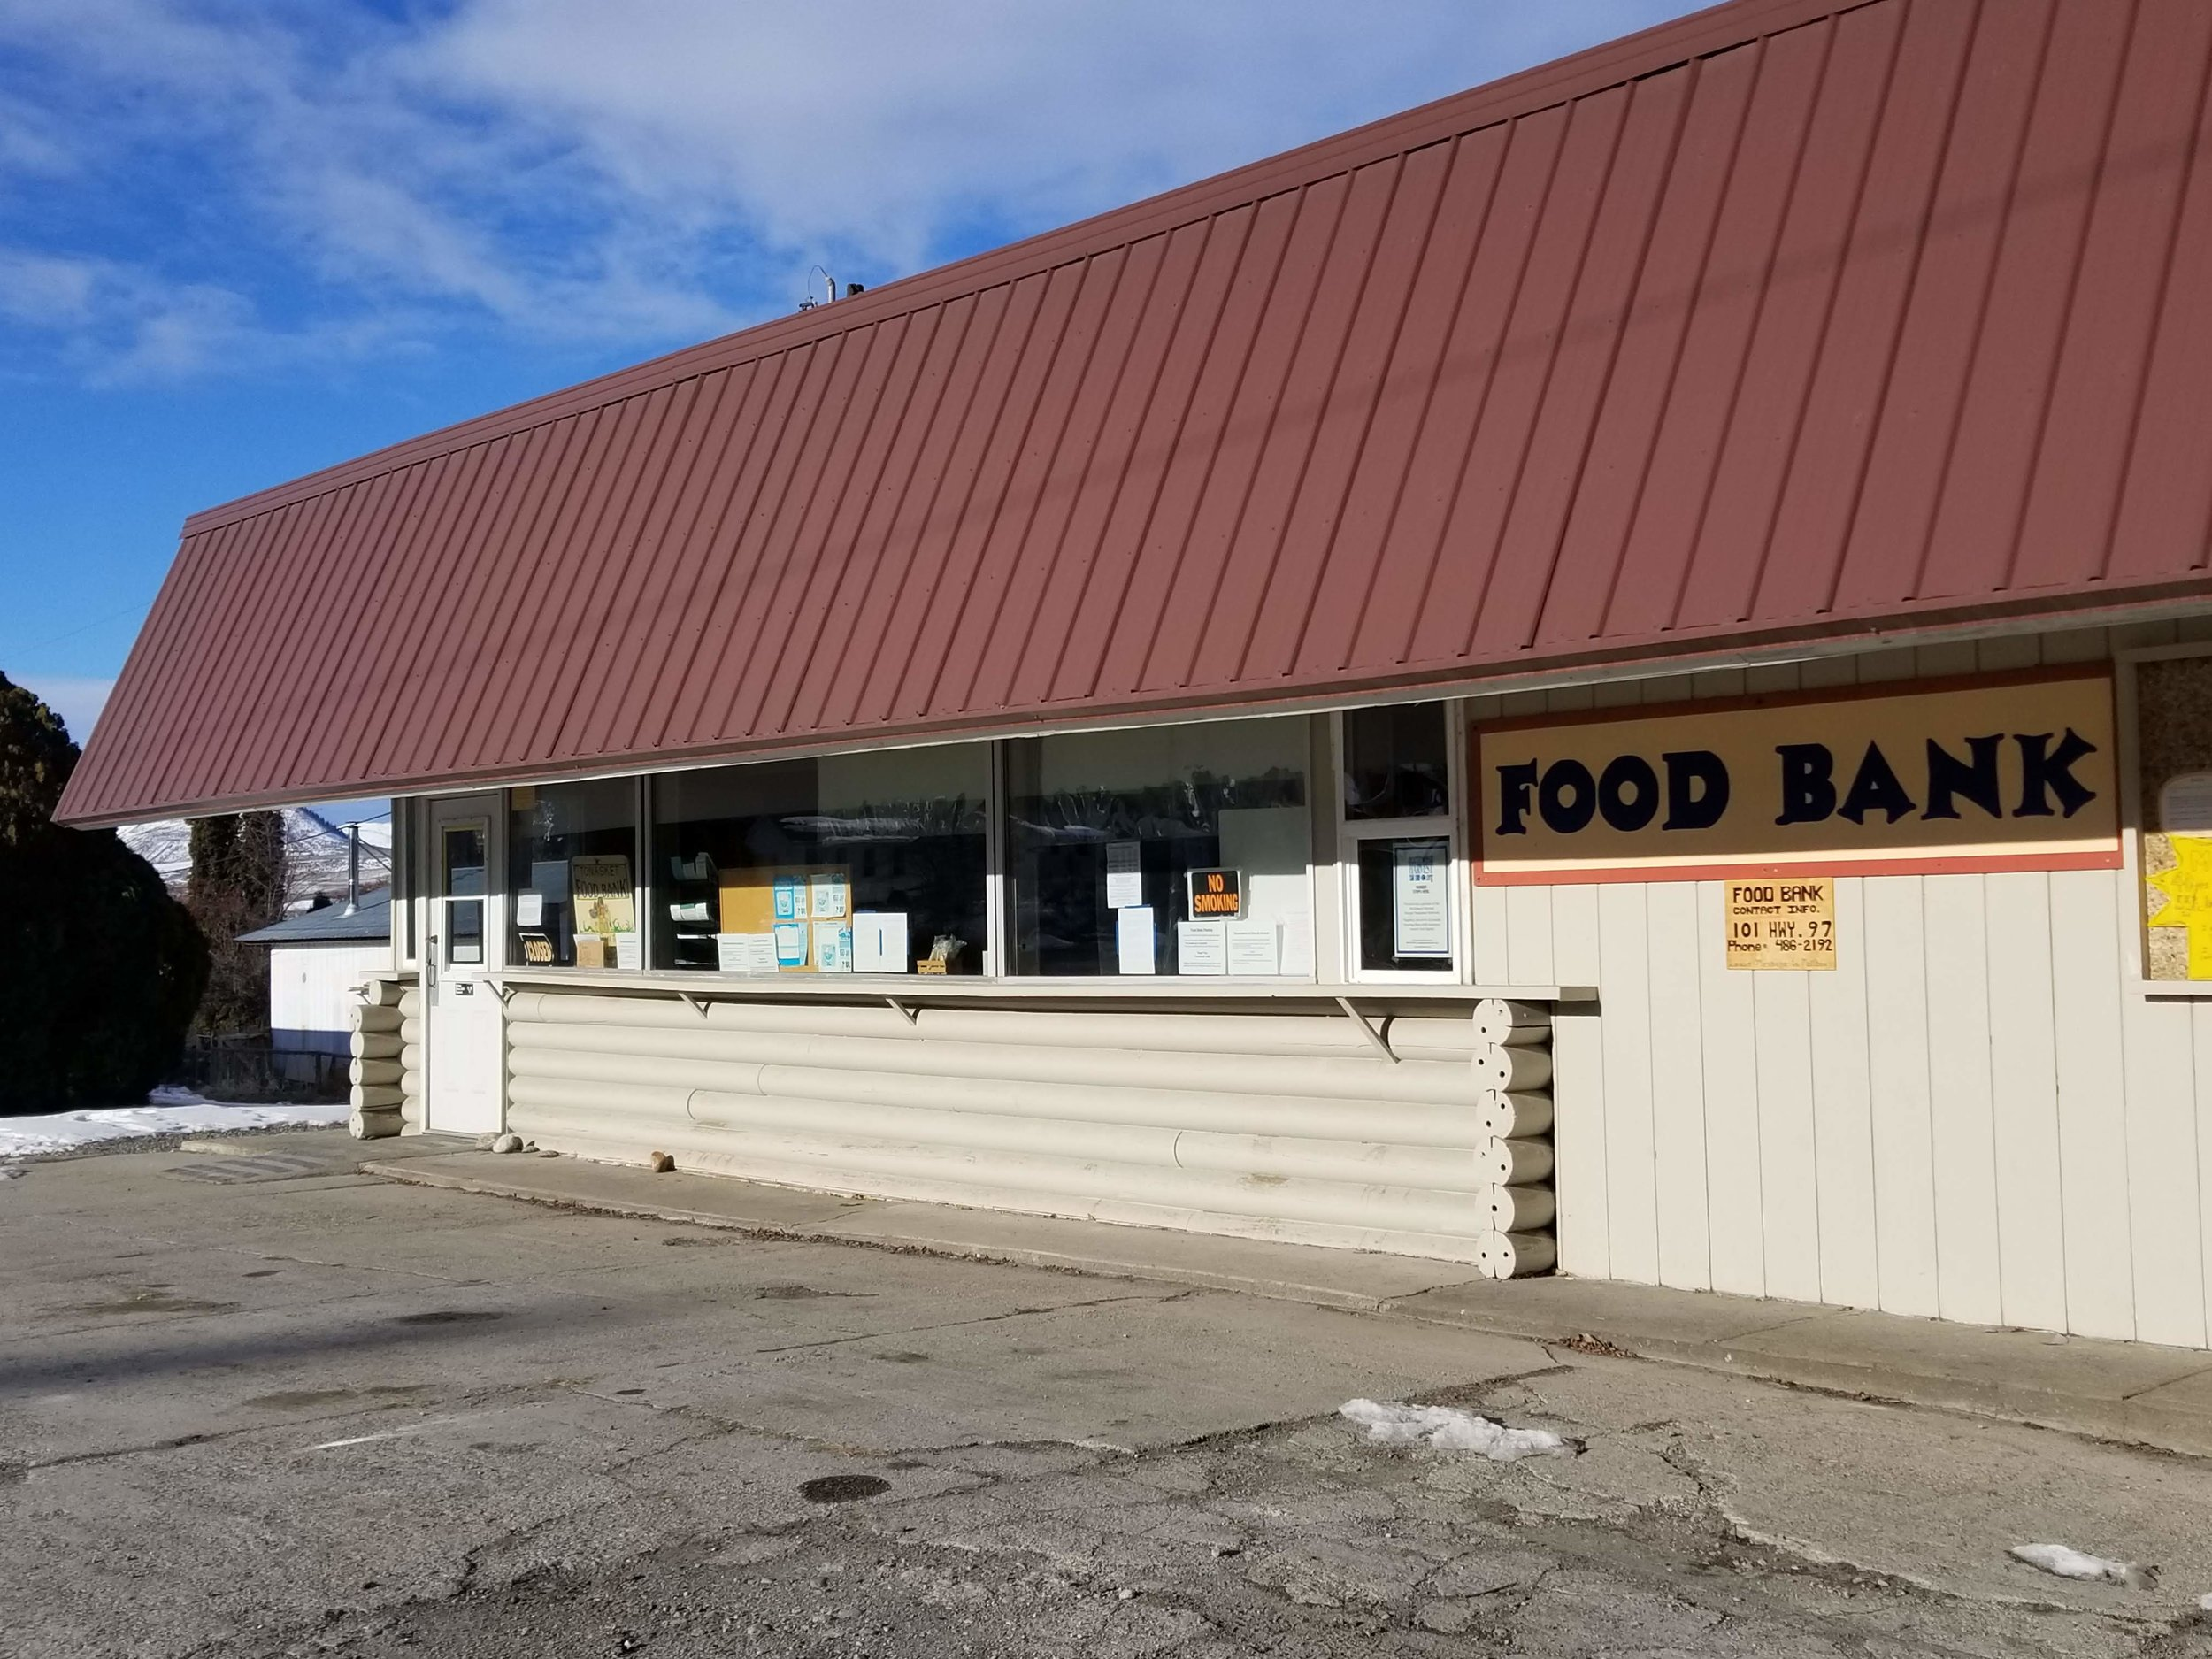 Food Bank - The Tonasket Food Bank is open every Thursday from 9-11. Located at 101 Hwy 97. All are welcome. 509-486-2192